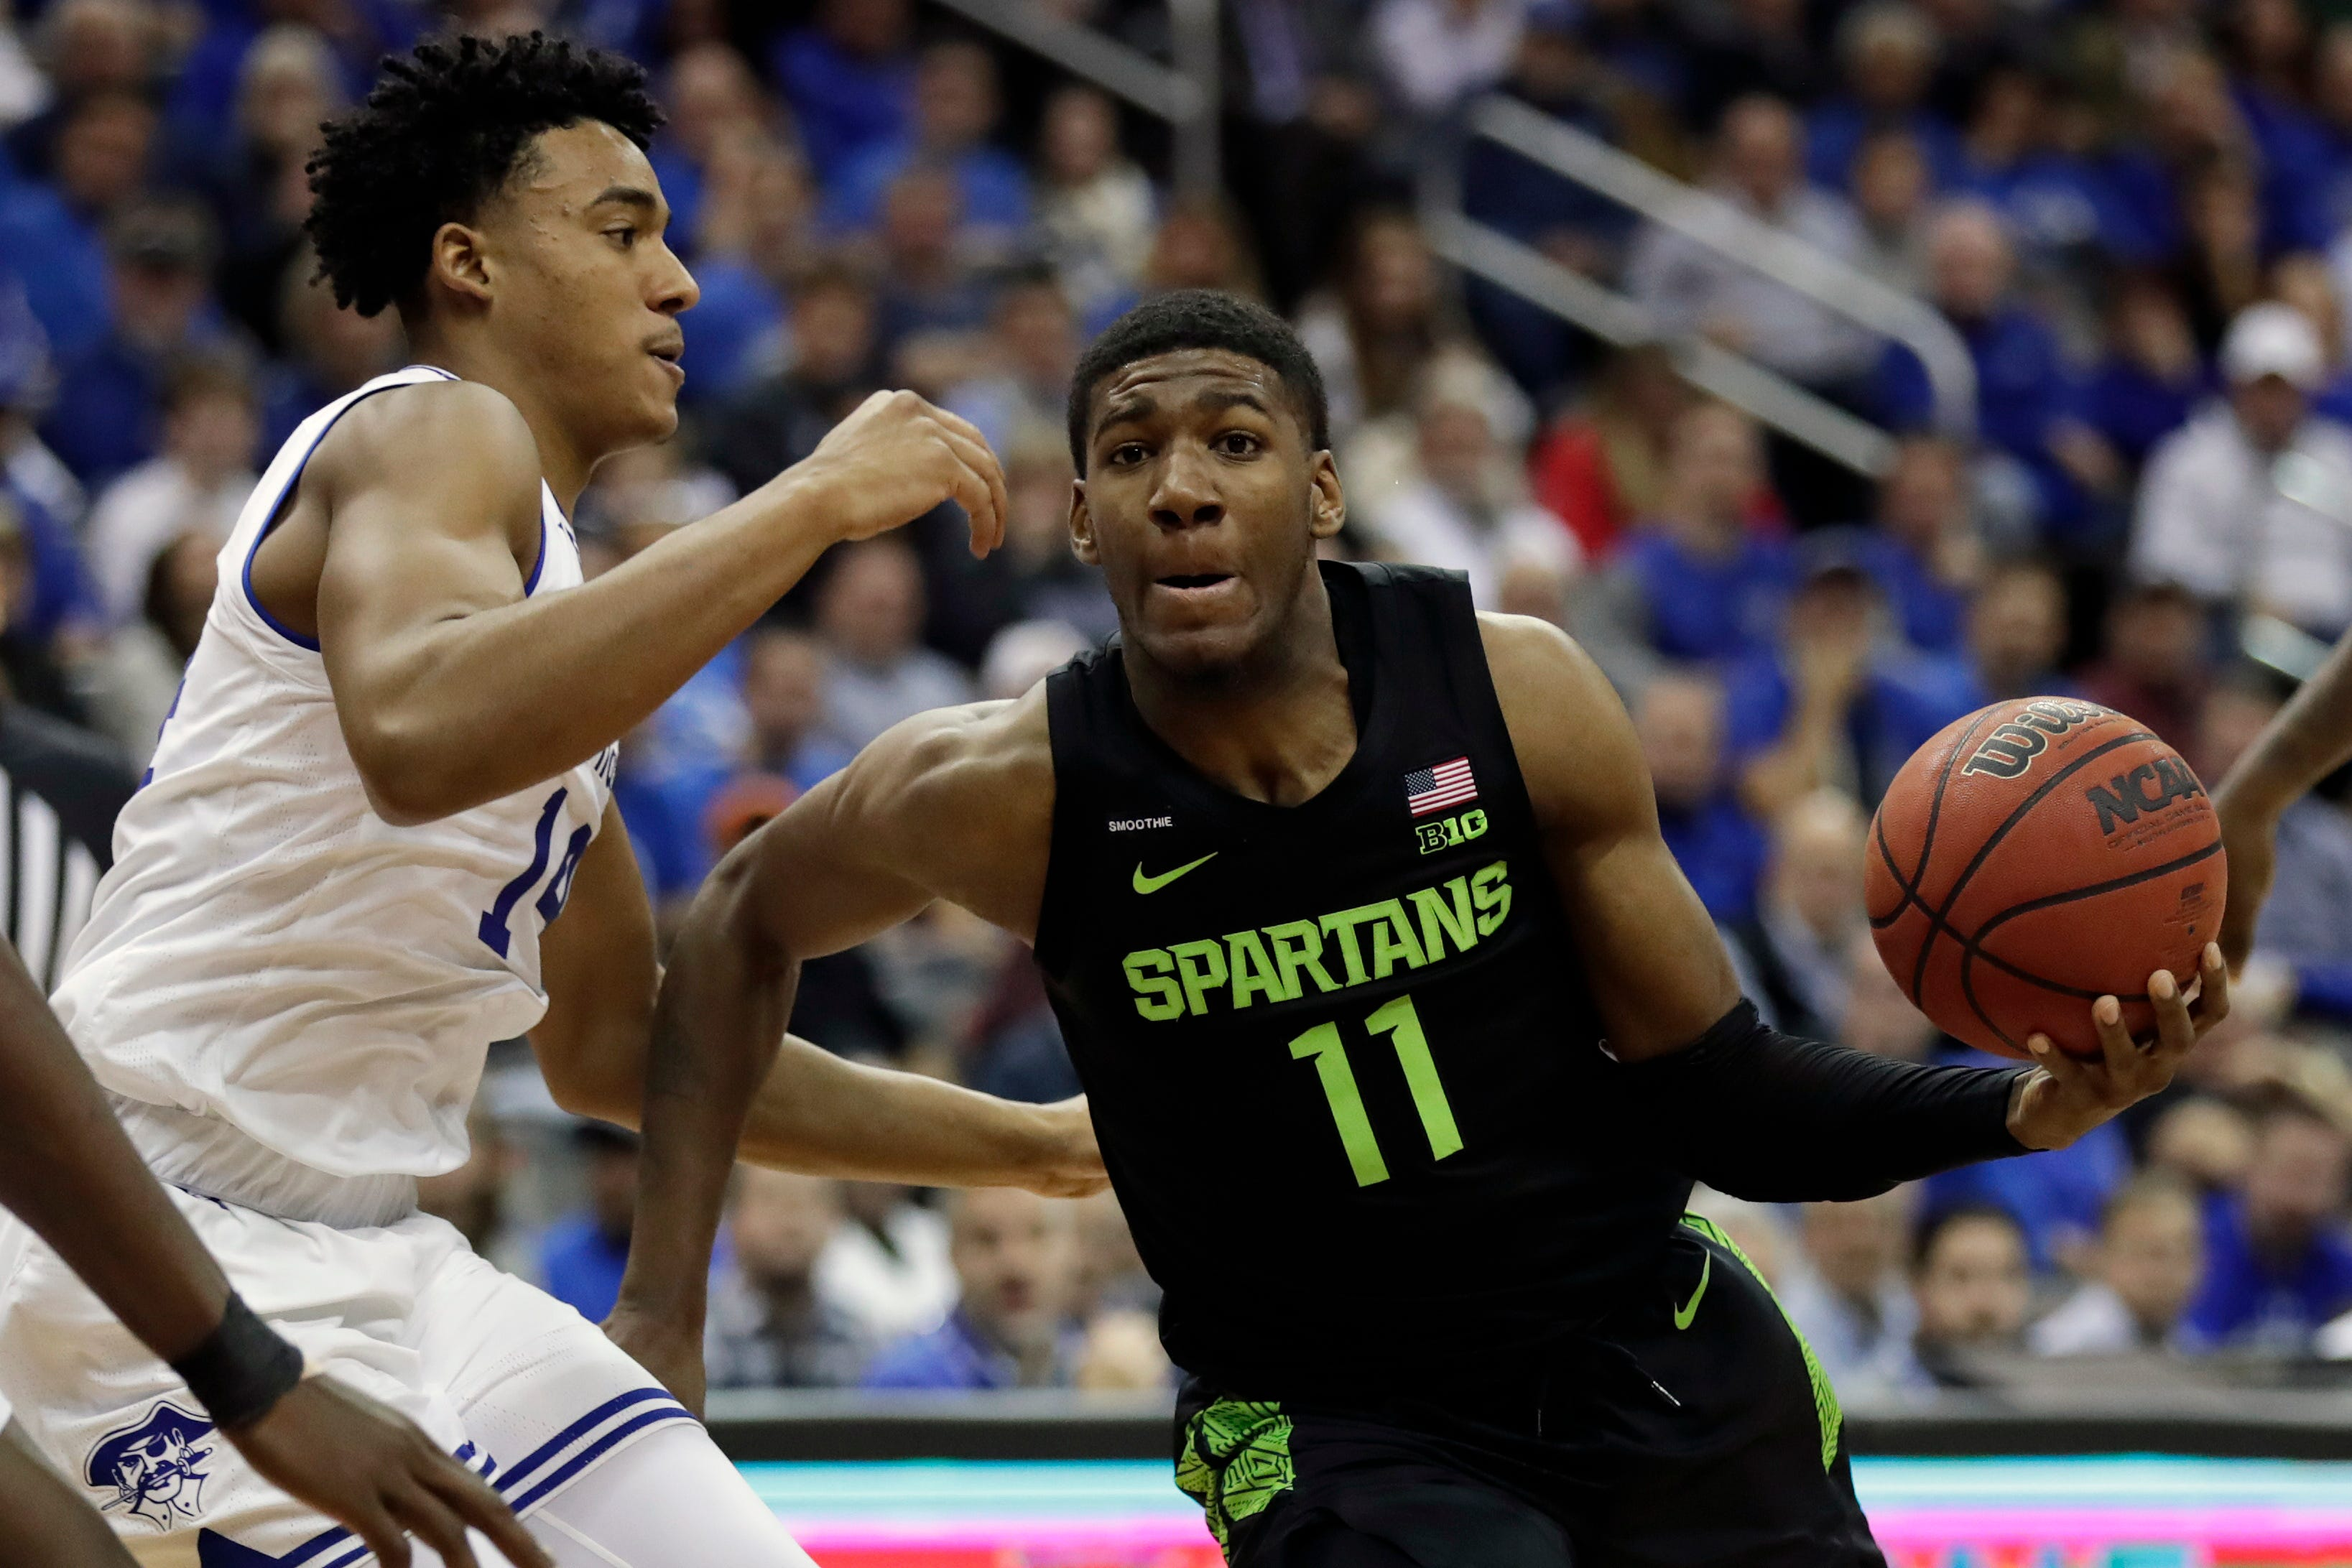 Michigan State`s Henry says he`s OK after injury...